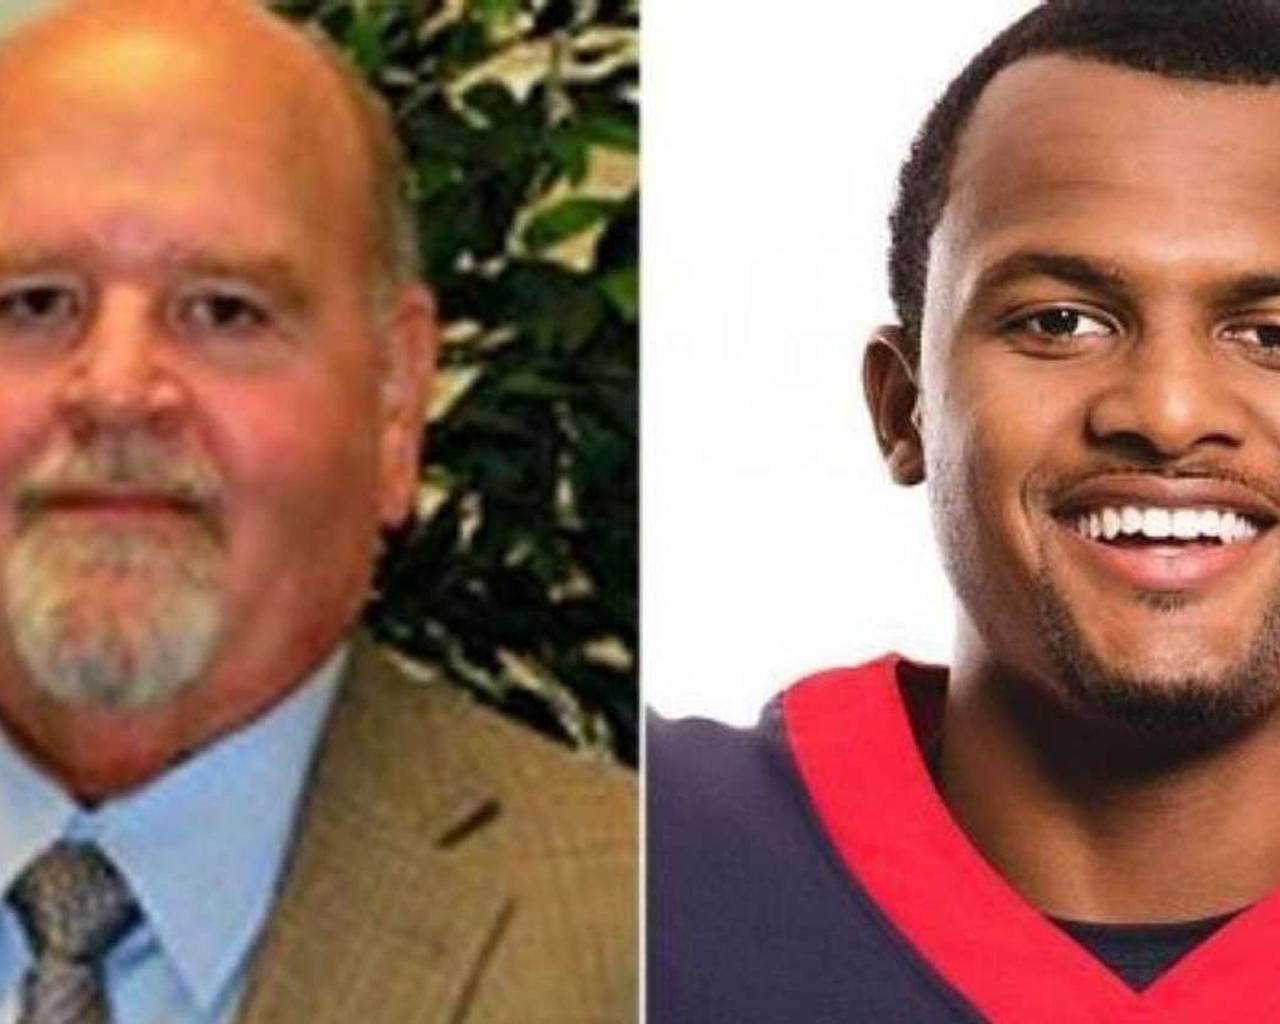 Facebook Post About Texans Quarterback Got School Superintendent Fired: Was This The Right Move?